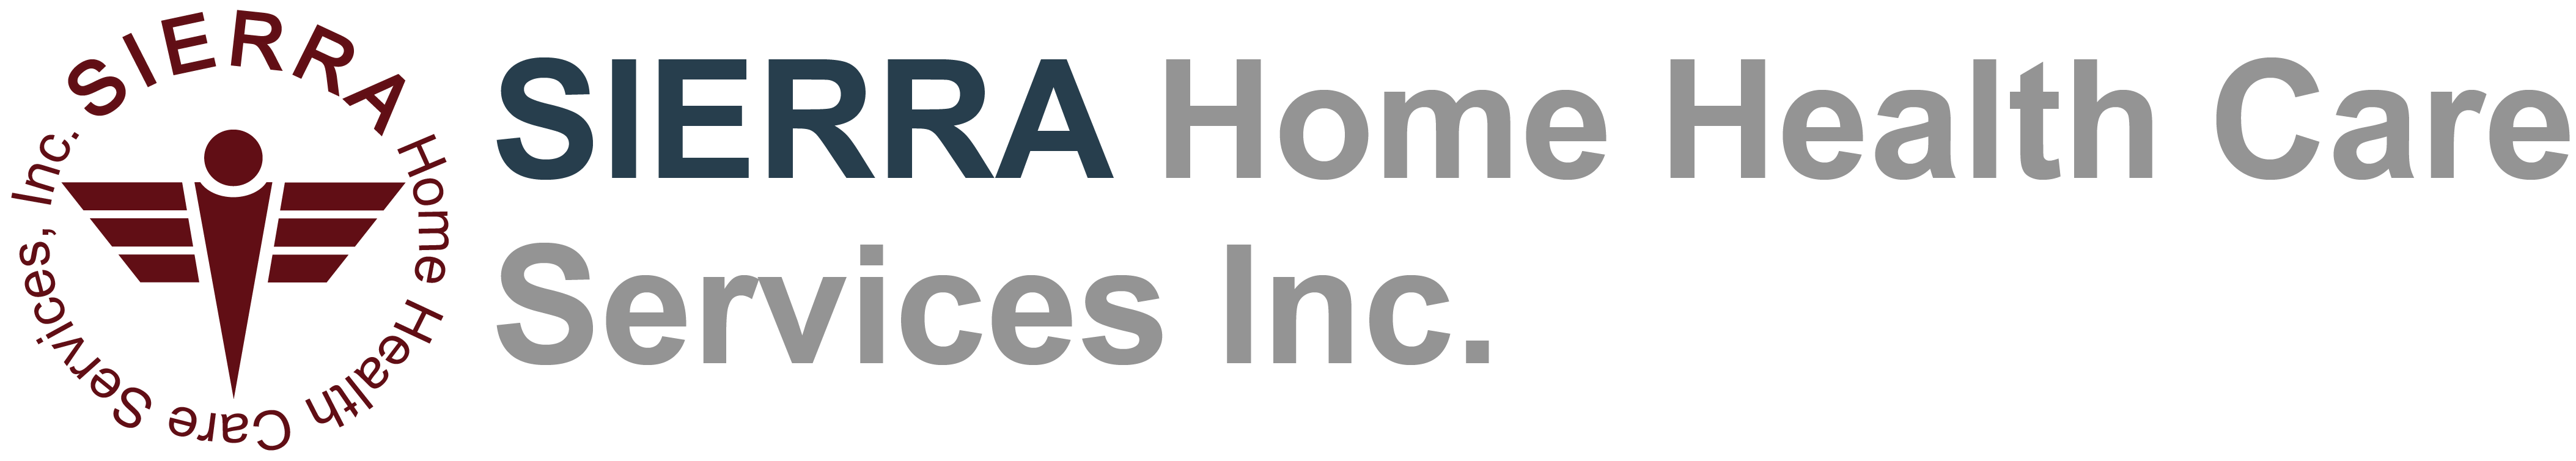 Sierra Home Health Care – Official